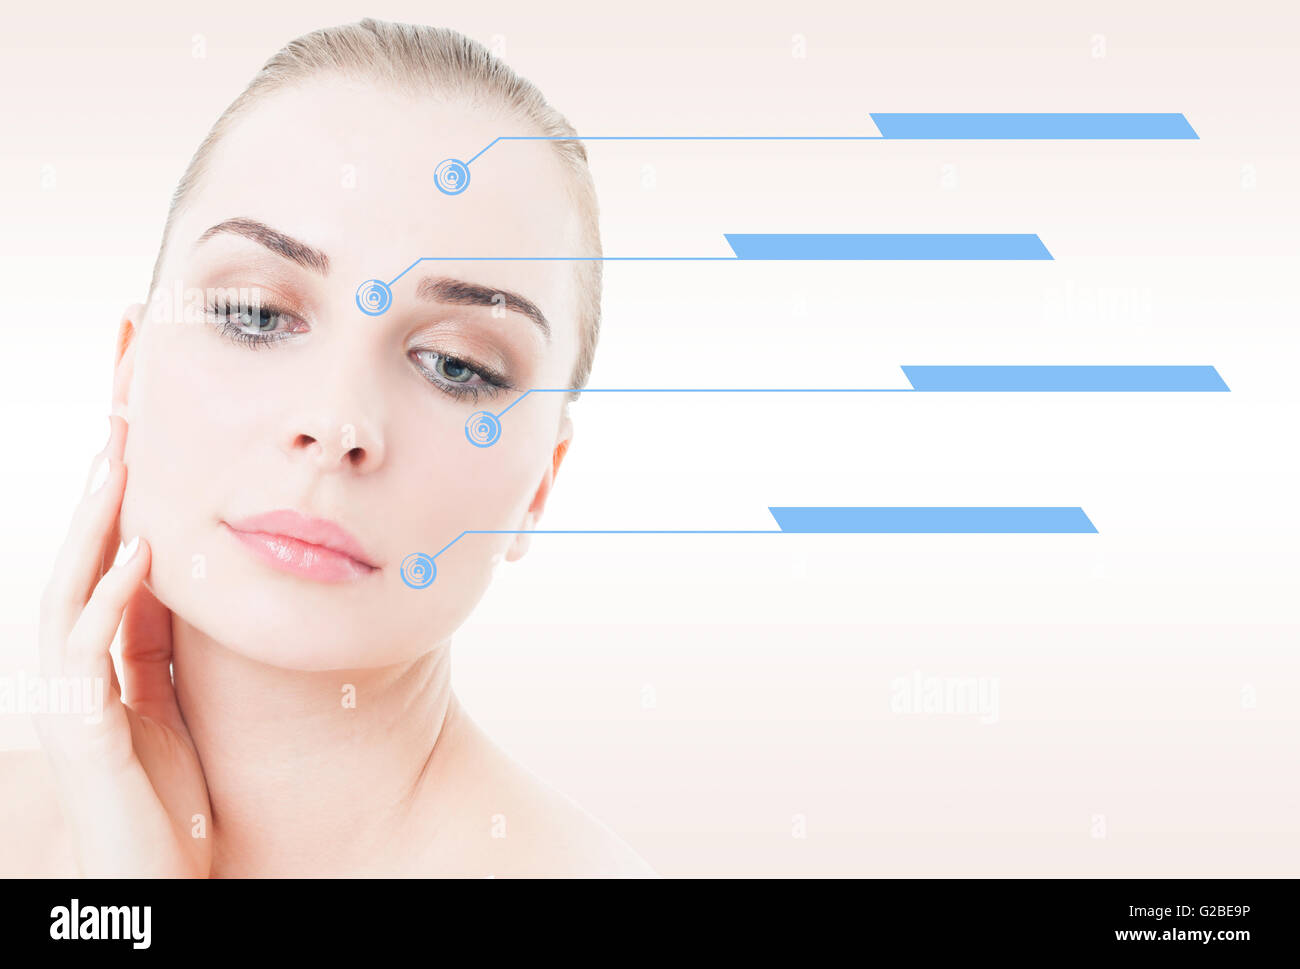 Female portrait with smooth skin and indicators on her face against pink studio background - Stock Image